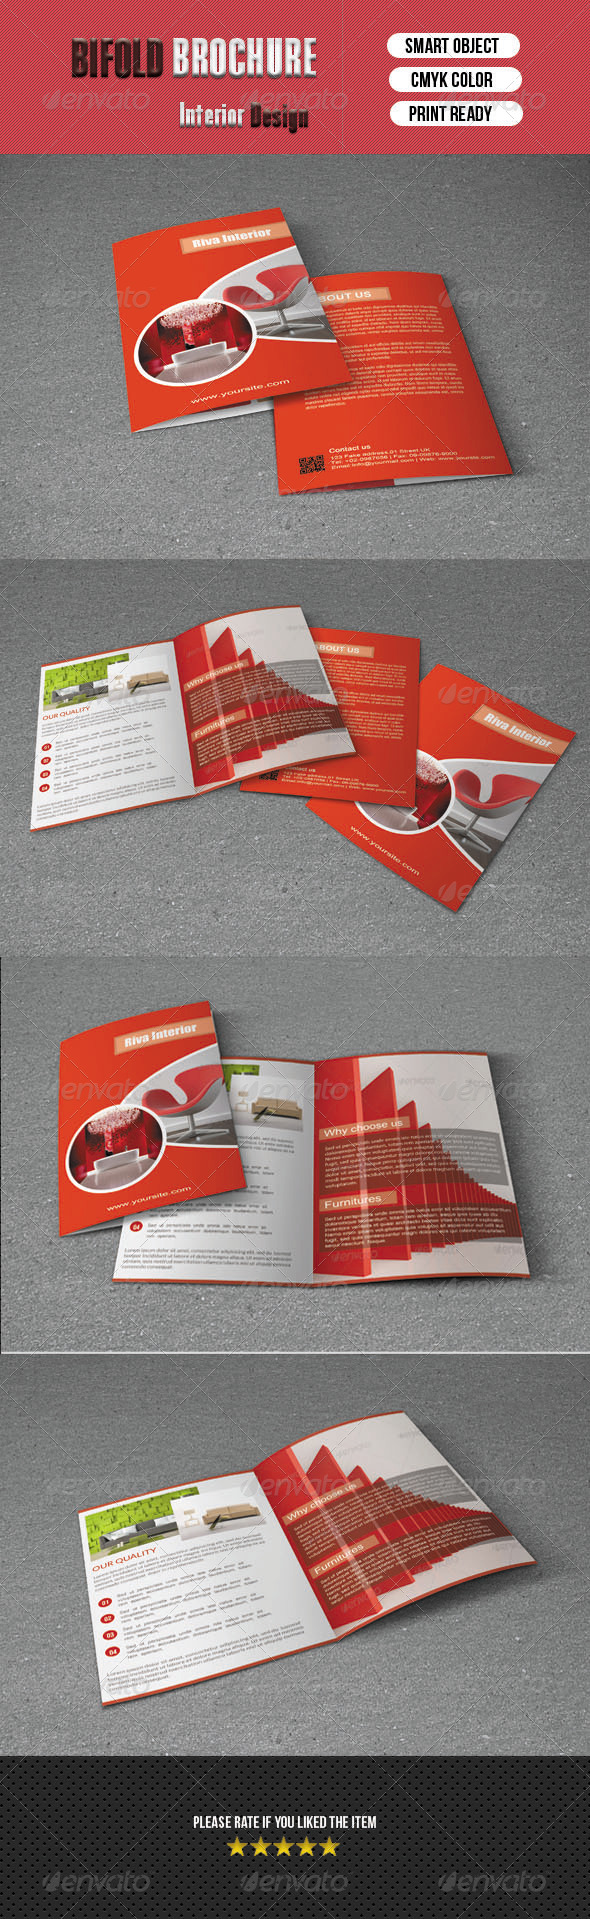 Interior Bifold Brochure - Corporate Brochures